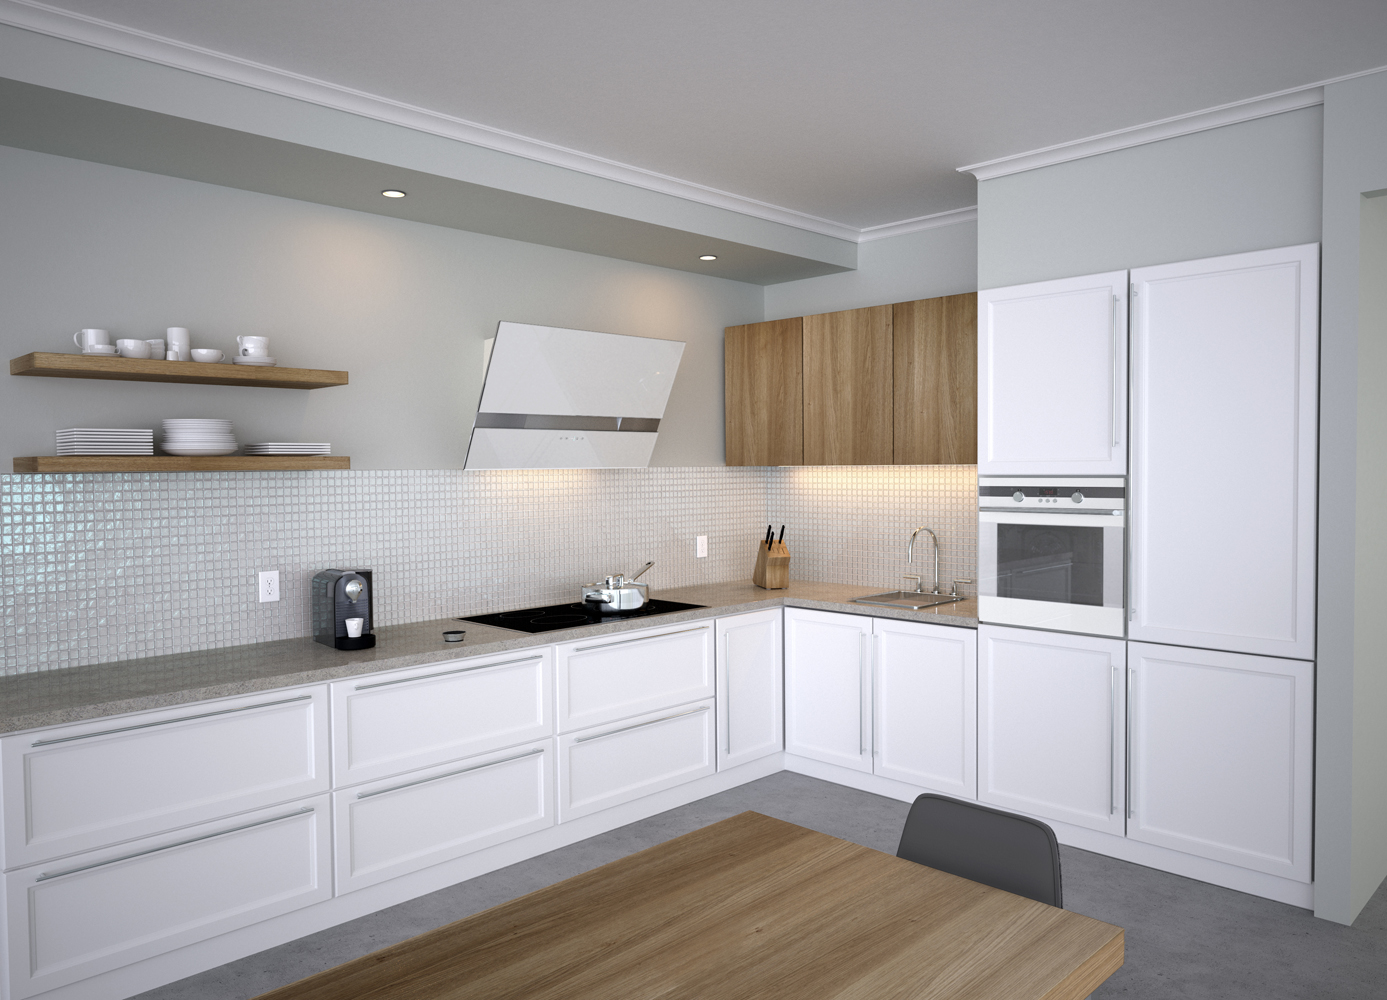 zephyr kitchen hood with pizza oven introduces vertical style ventilation hoods wave and incline